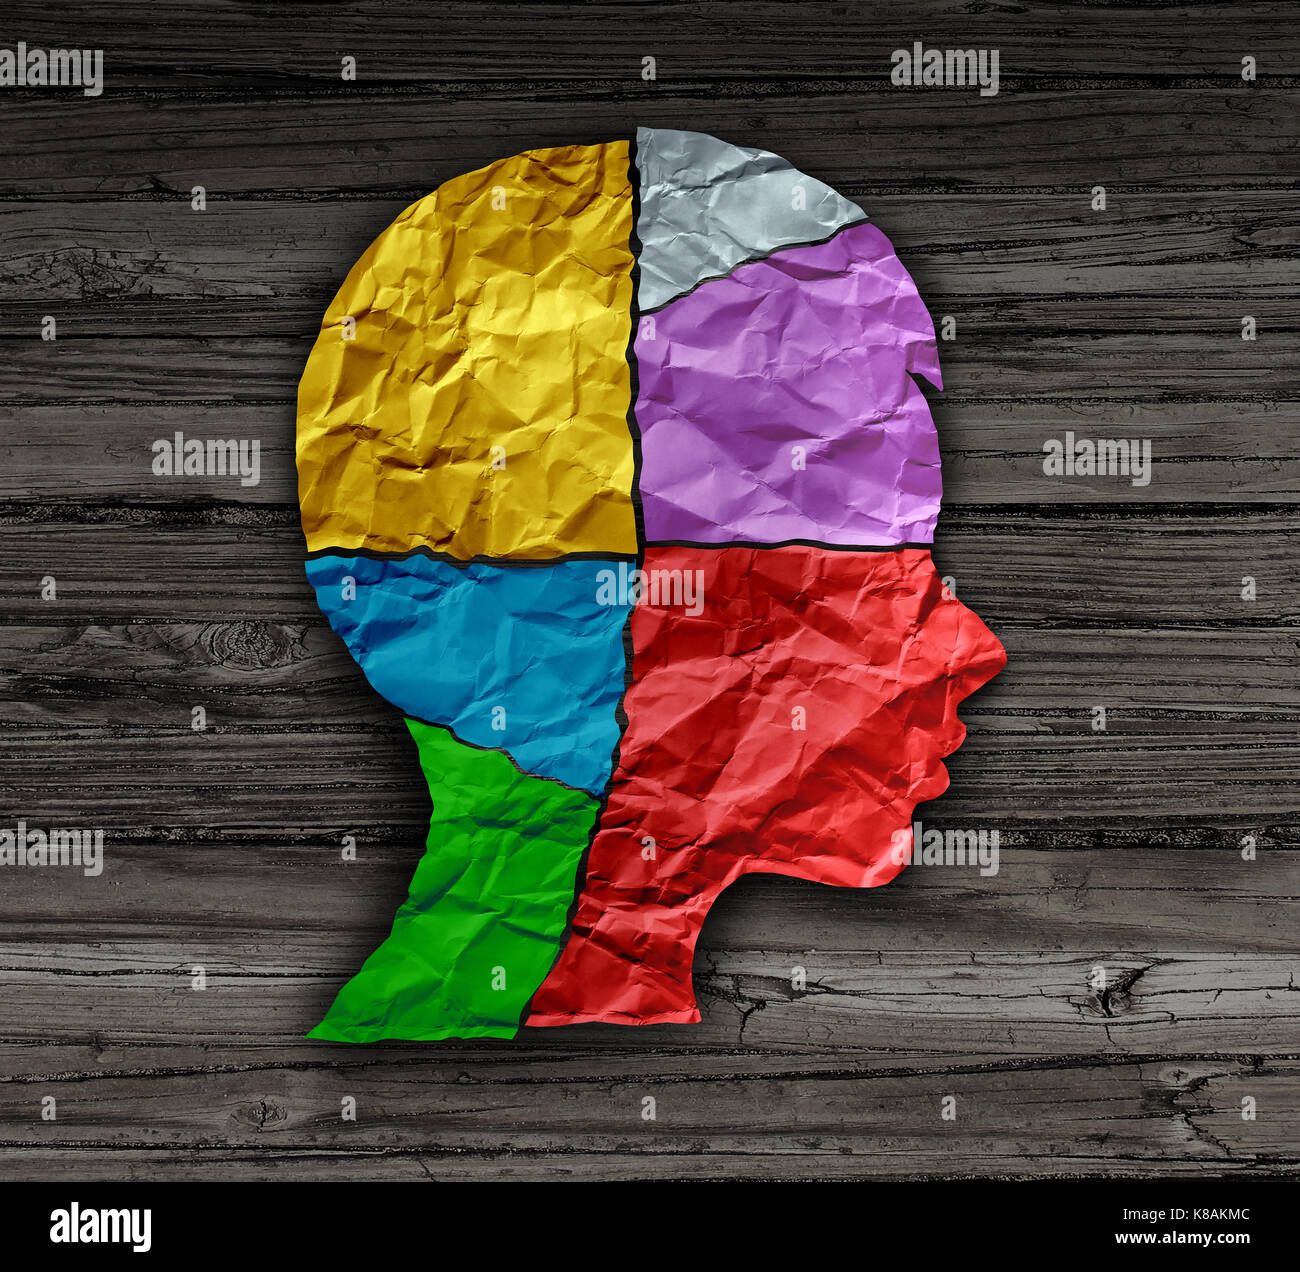 Child mood psychology change as a young person head shape made from crumpled paper as a mental health metaphor for - Stock Image